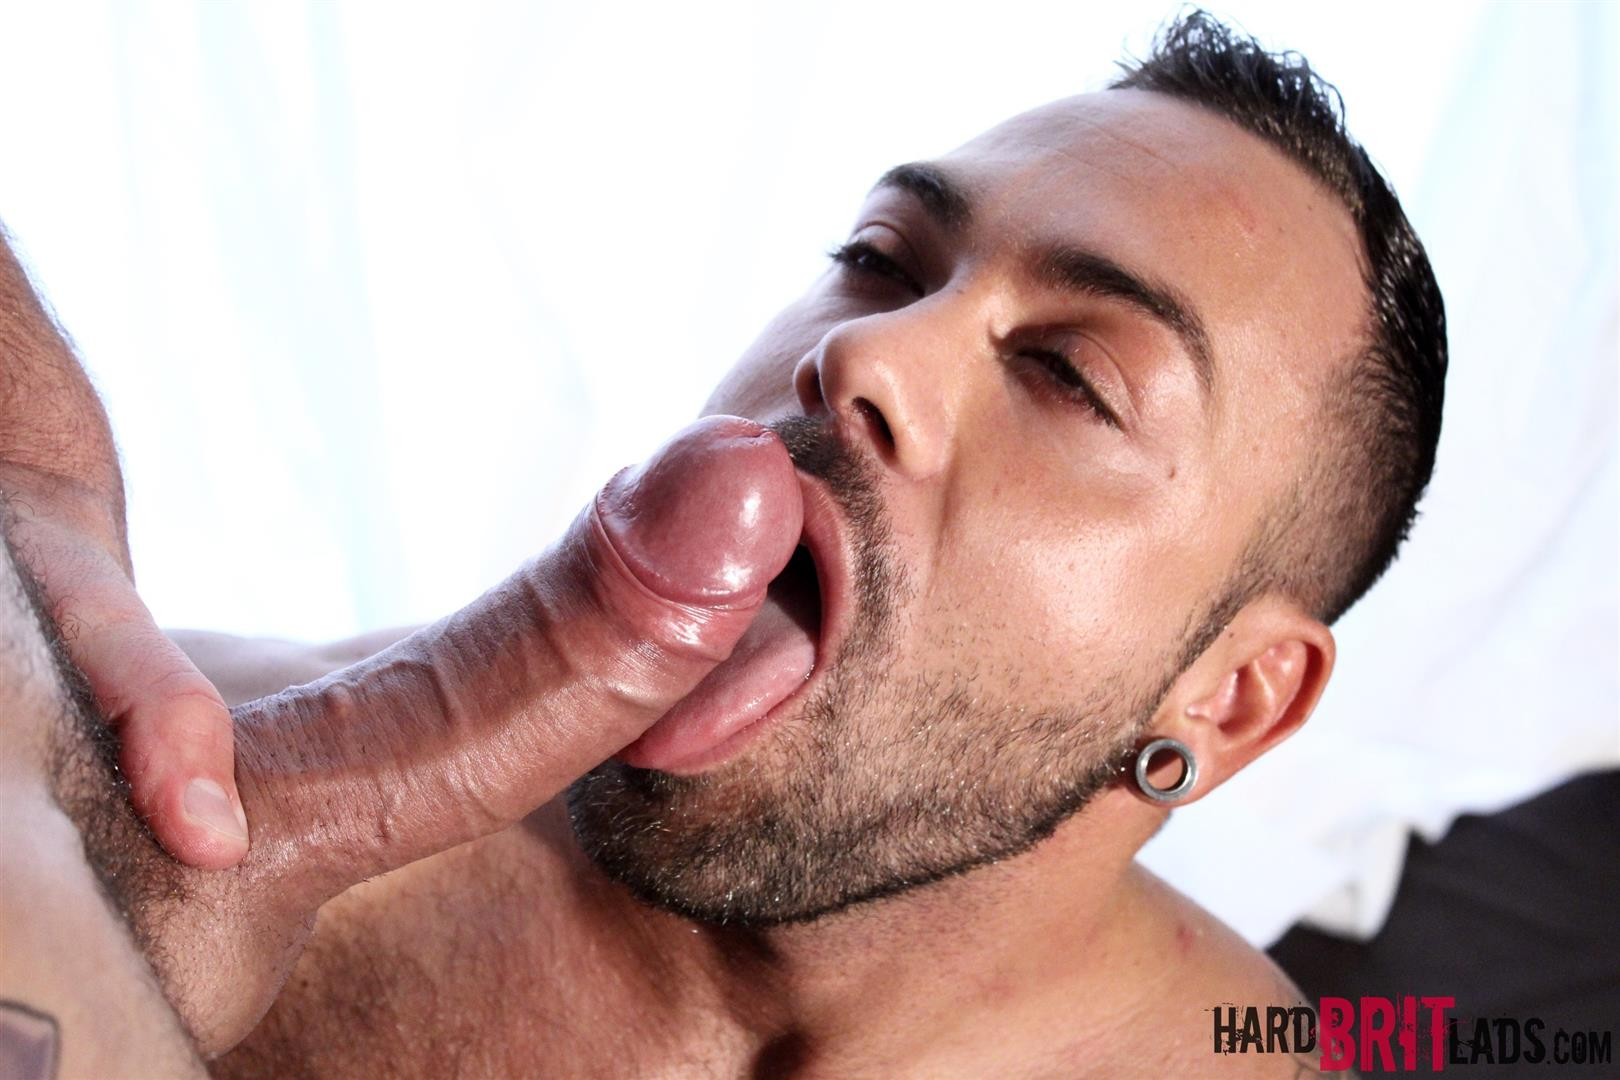 Hard Brit Lads Sergi Rodriguez and Letterio Amadeo Big Uncut Cock Fucking Amateur Gay Porn 06